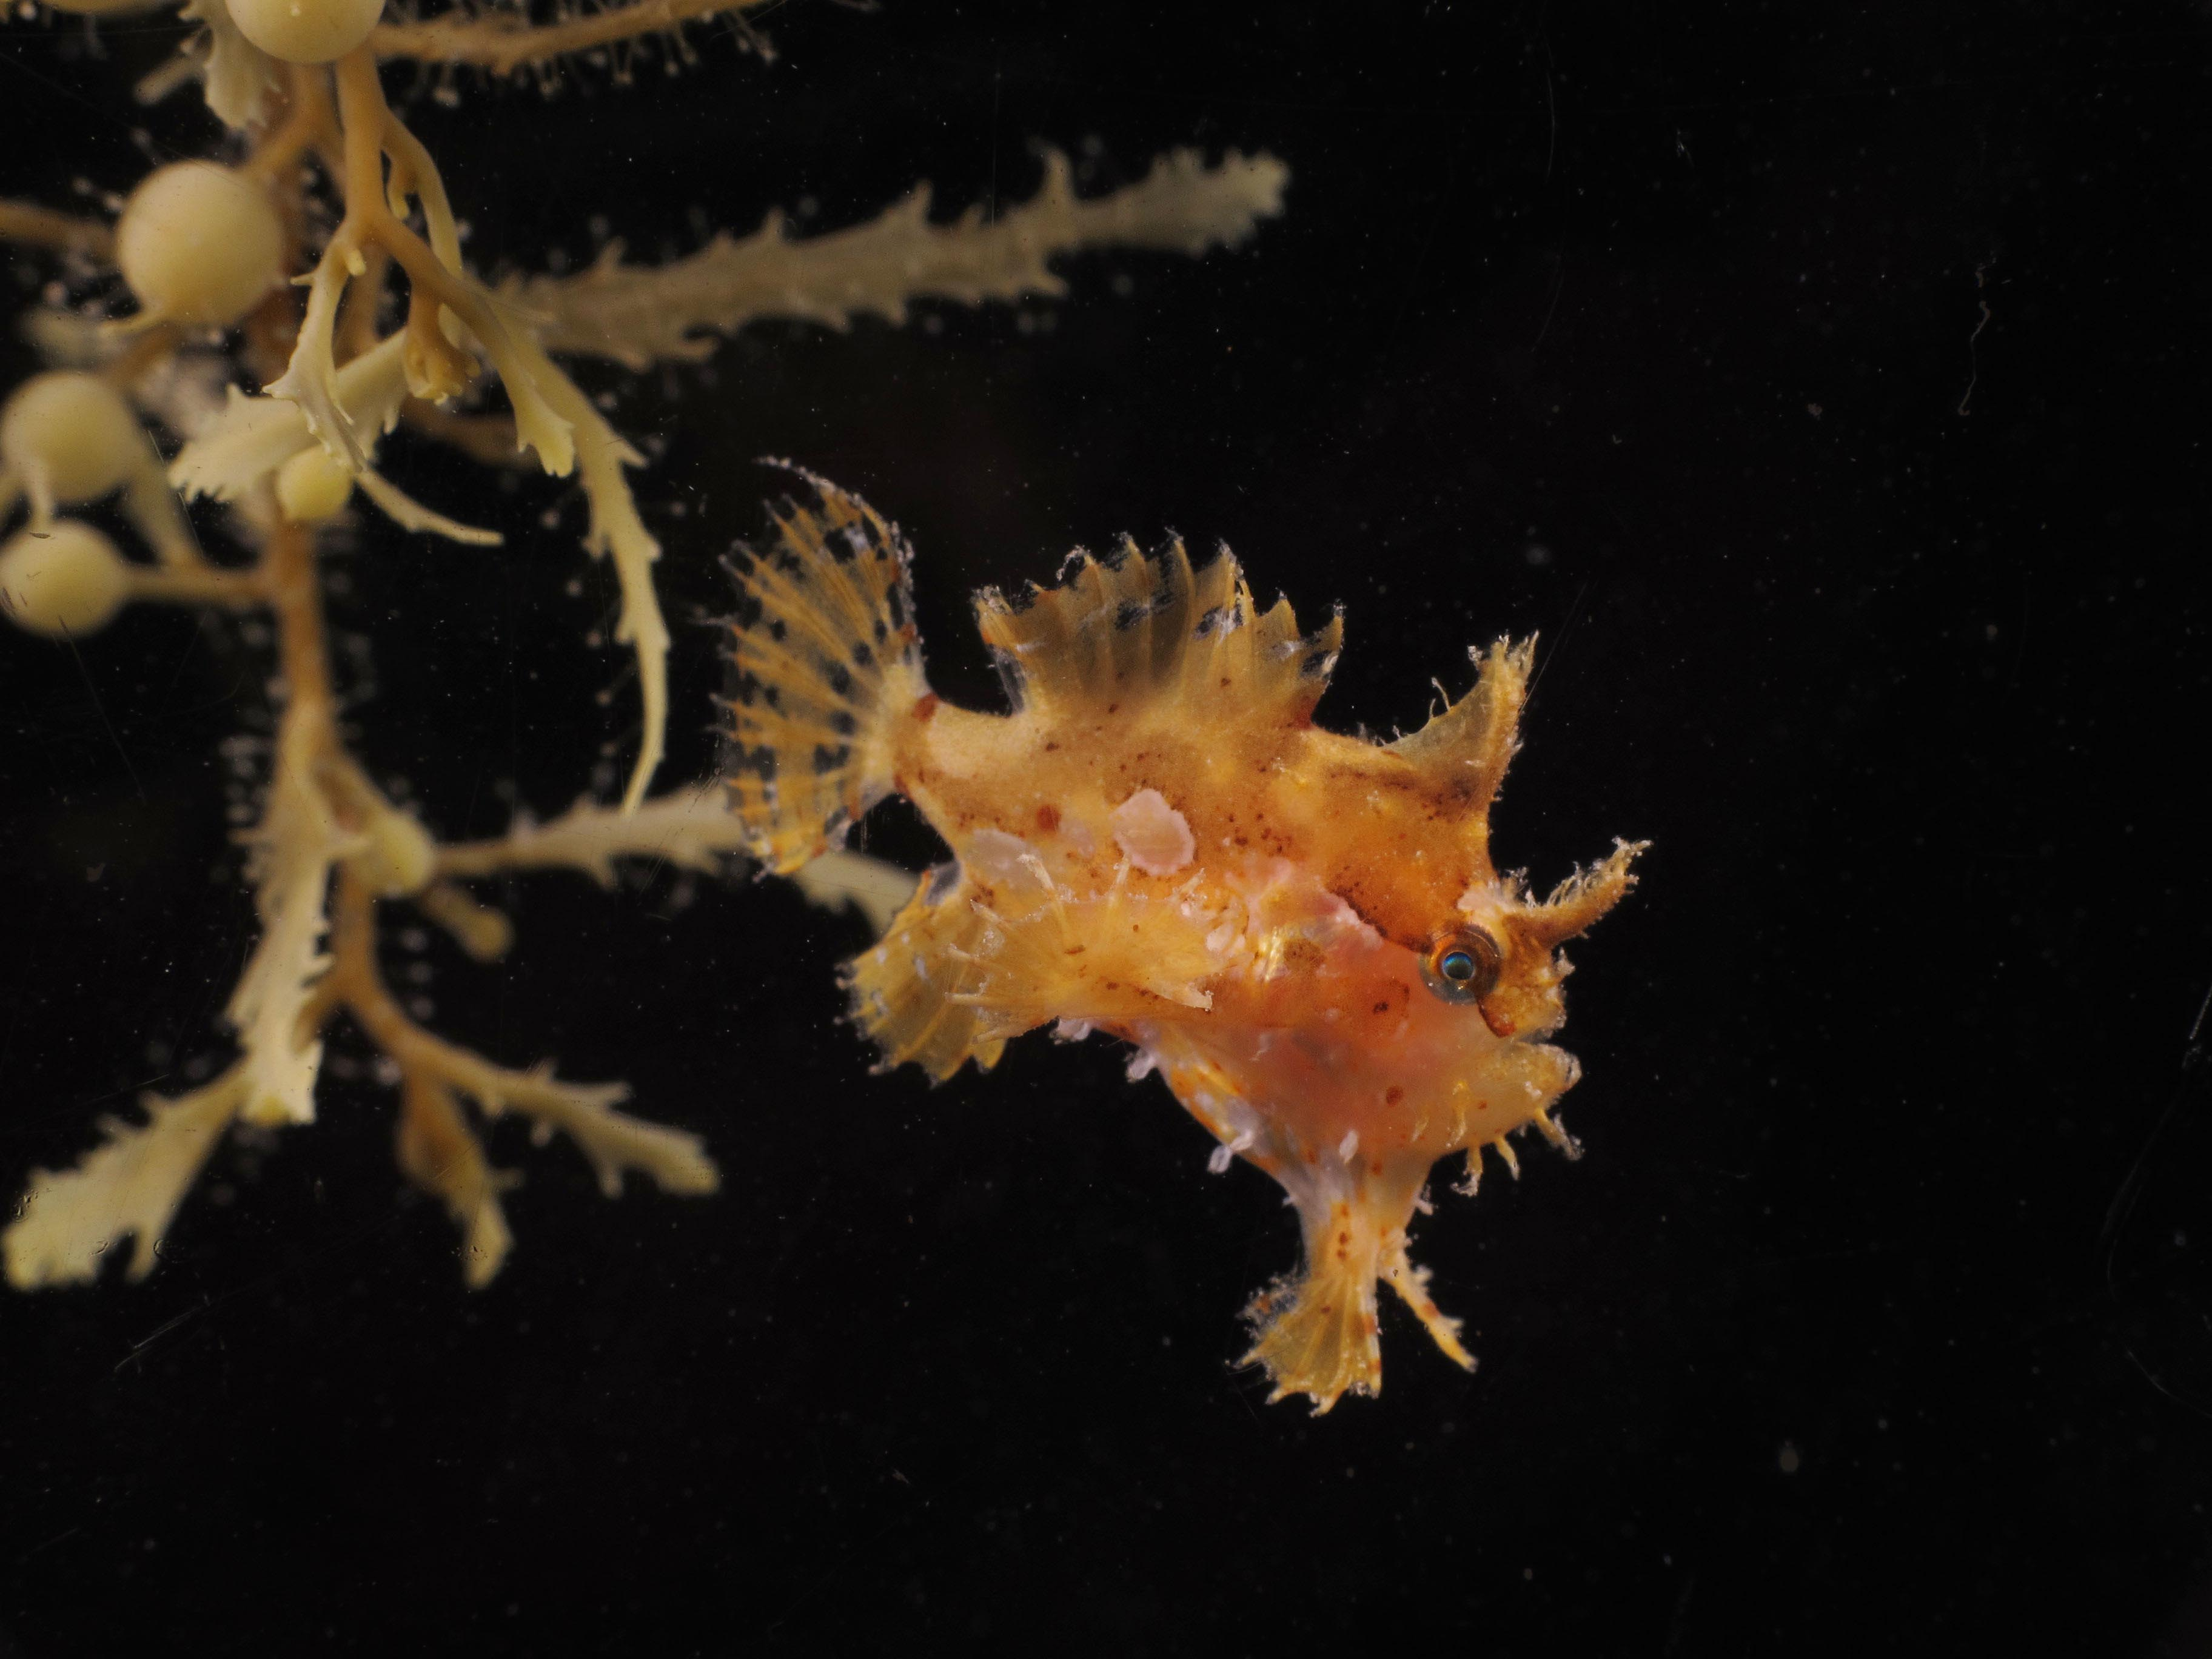 The fins of the frogfish are perfect for creeping around in the algae and stalking unsuspecting prey.<div class='credit'><strong>Credit:</strong> The fins of the frogfish are perfect for creeping around in the algae and stalking unsuspecting prey.</div>